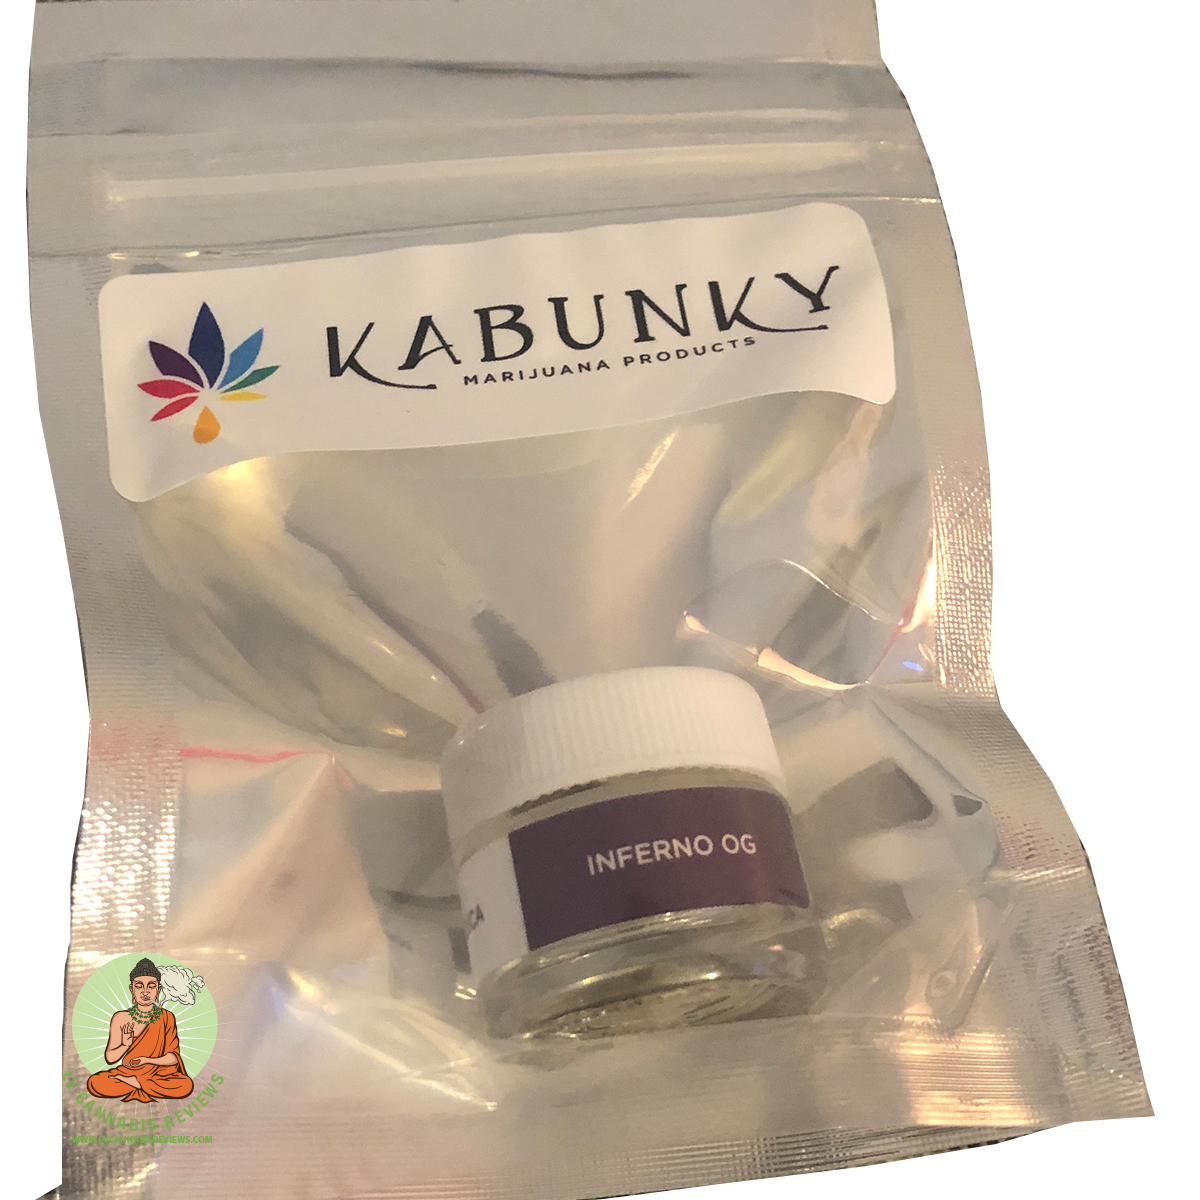 Kabunky Inferno OG Review November 2019 Nevada Made Marijuana Dispensary